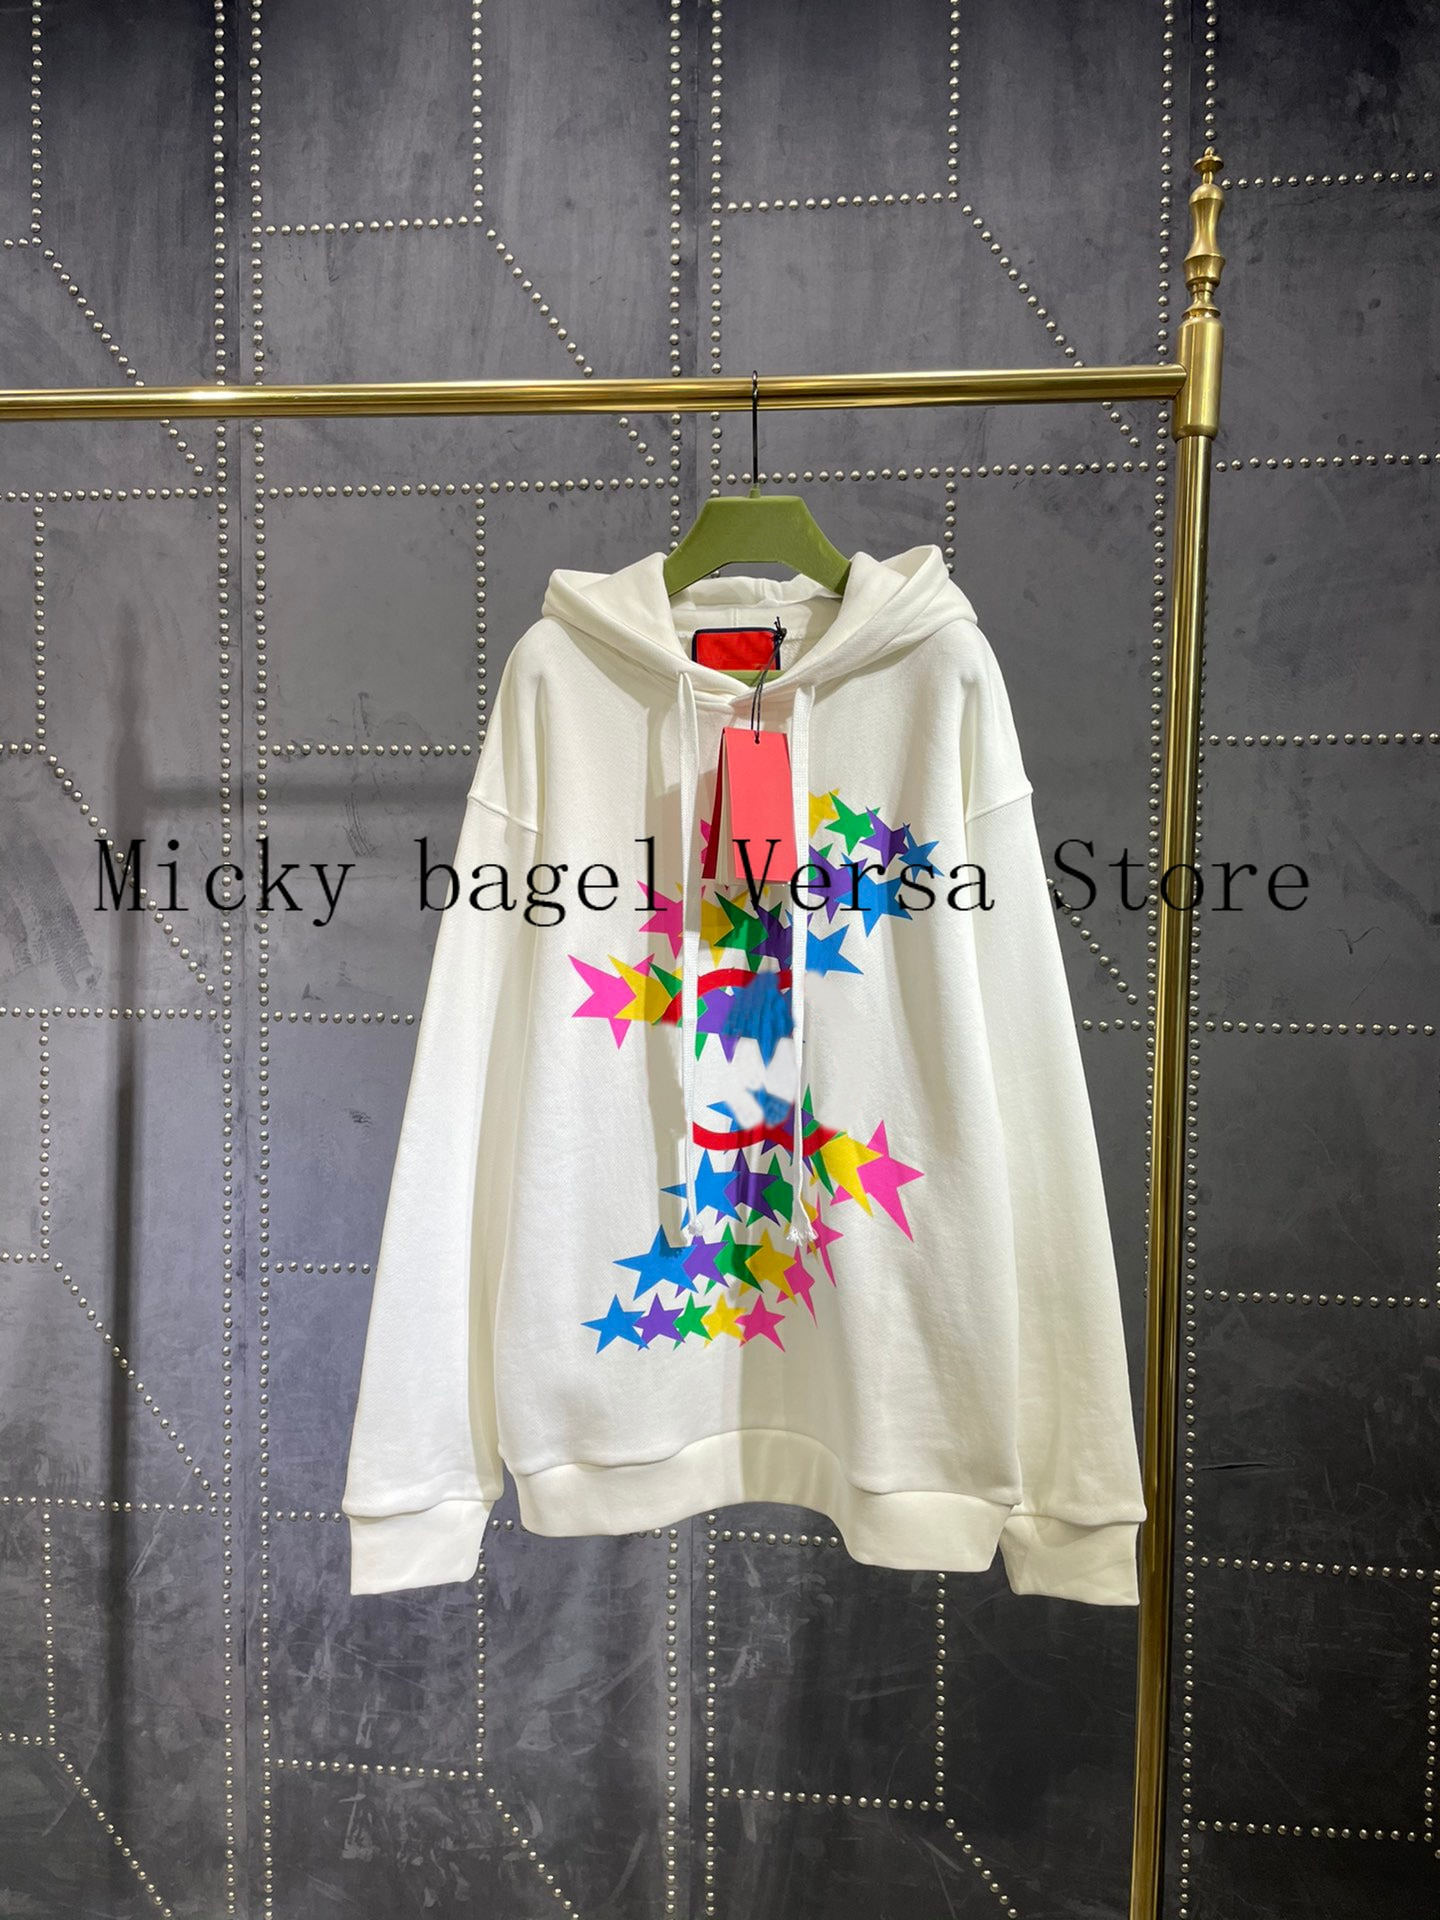 2021 luxury brand Pentagram letter printing fashion women's long sleeve top temperament versatile casual Cotton Hooded Pullover enlarge